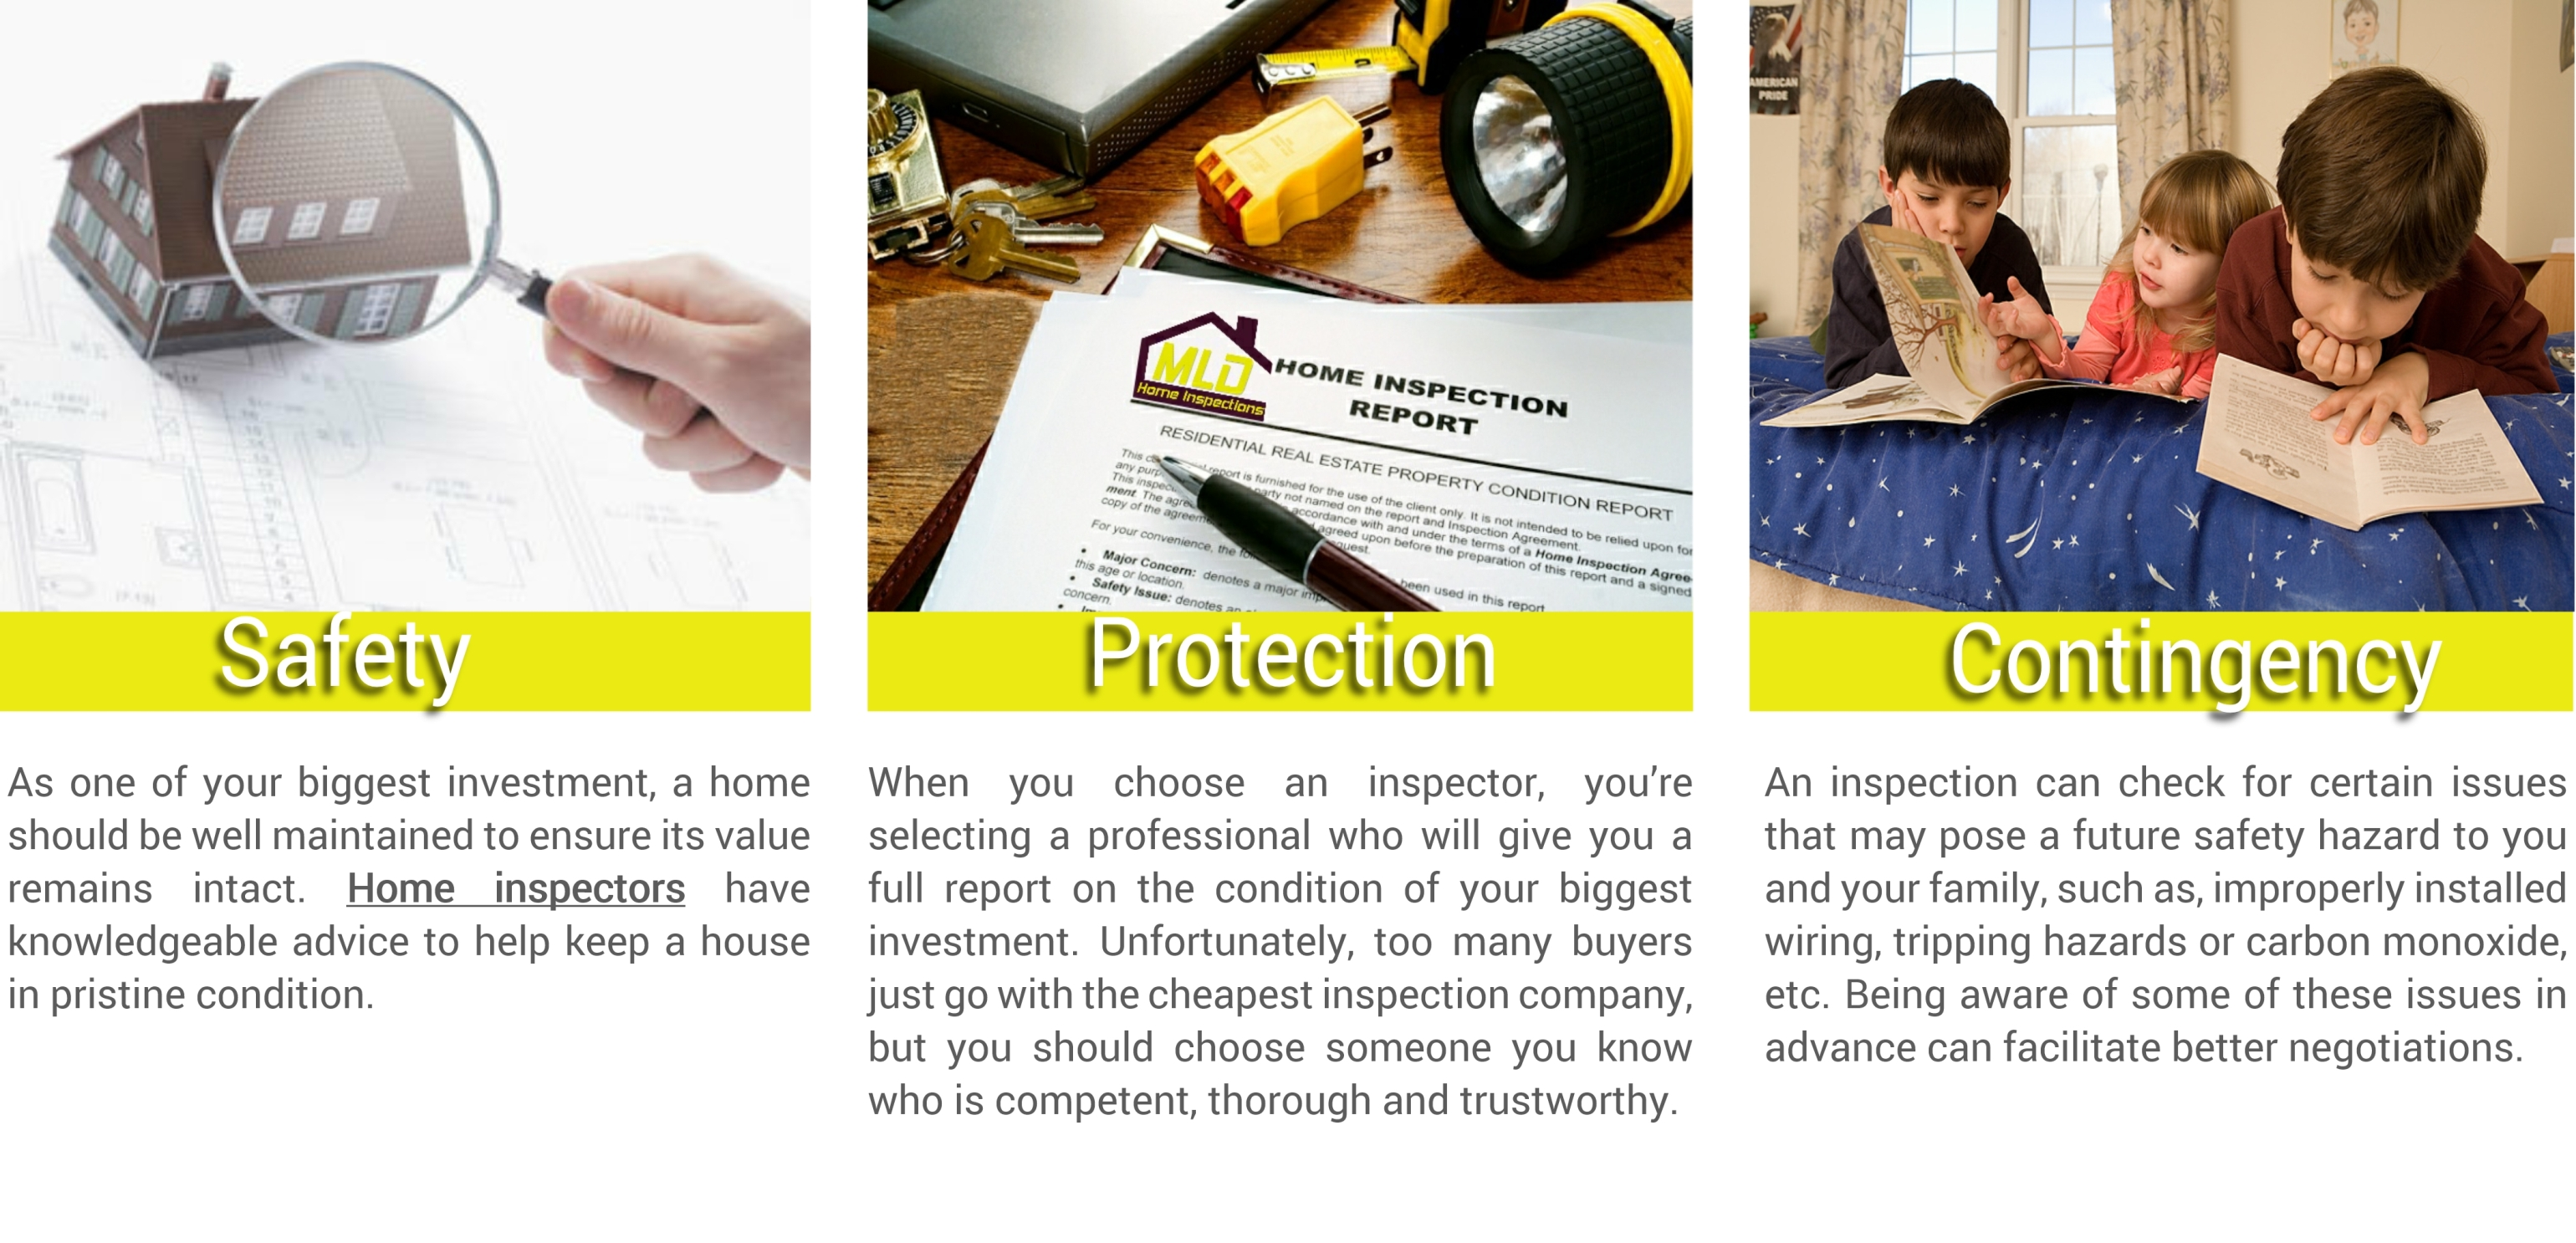 Mld home inspections 516 902 8793 serving all counties in ny state - Reasons always schedule regular home inspection ...